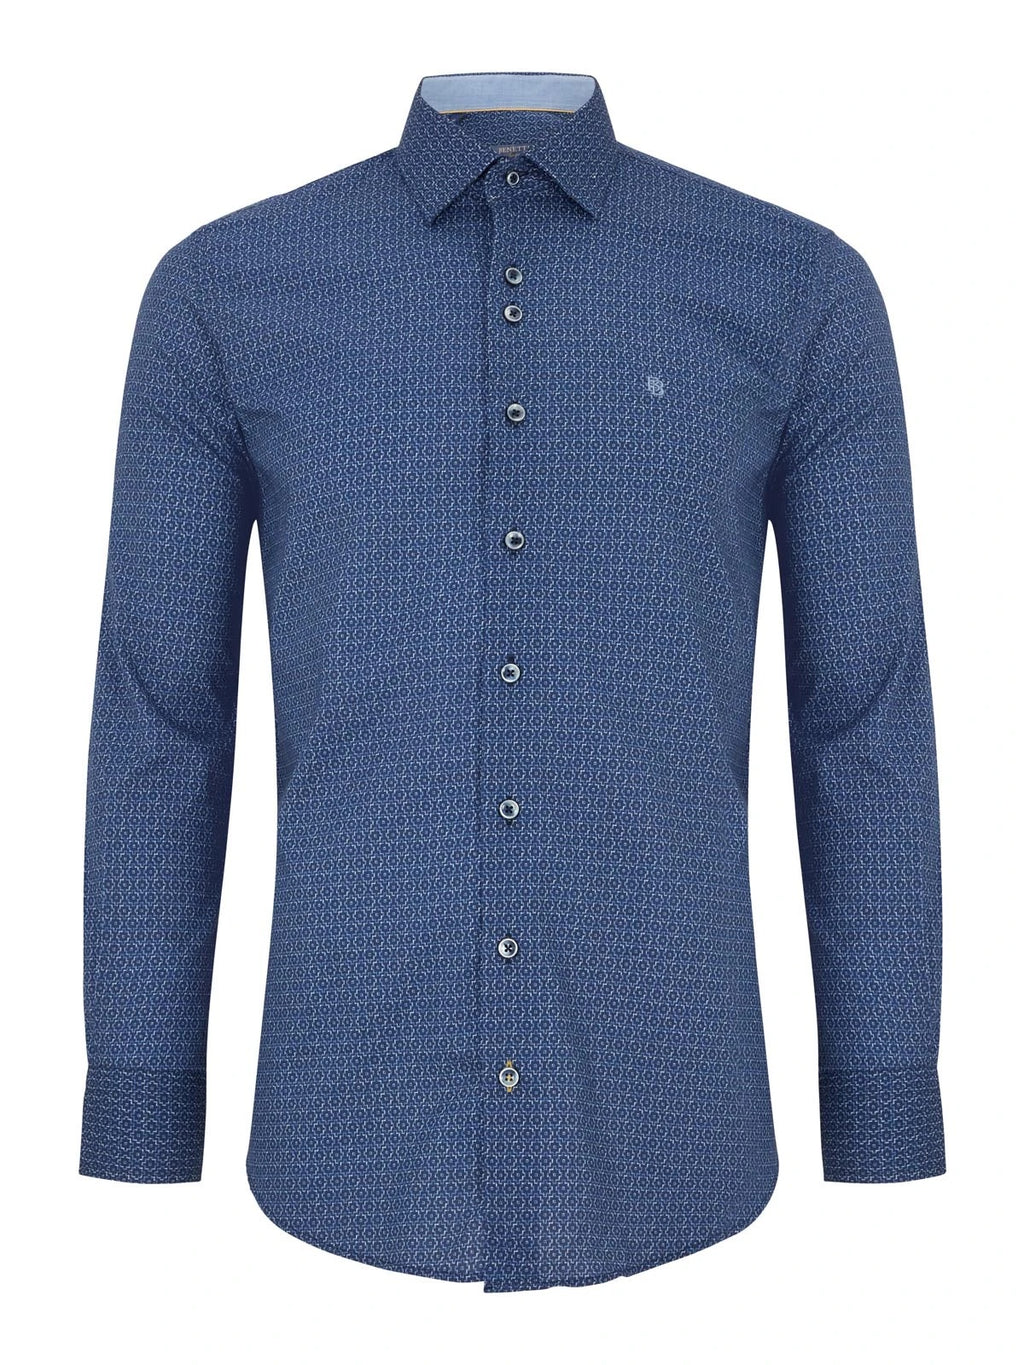 Benetti Modern Fit Niall Shirt - Navy - jjdonnelly